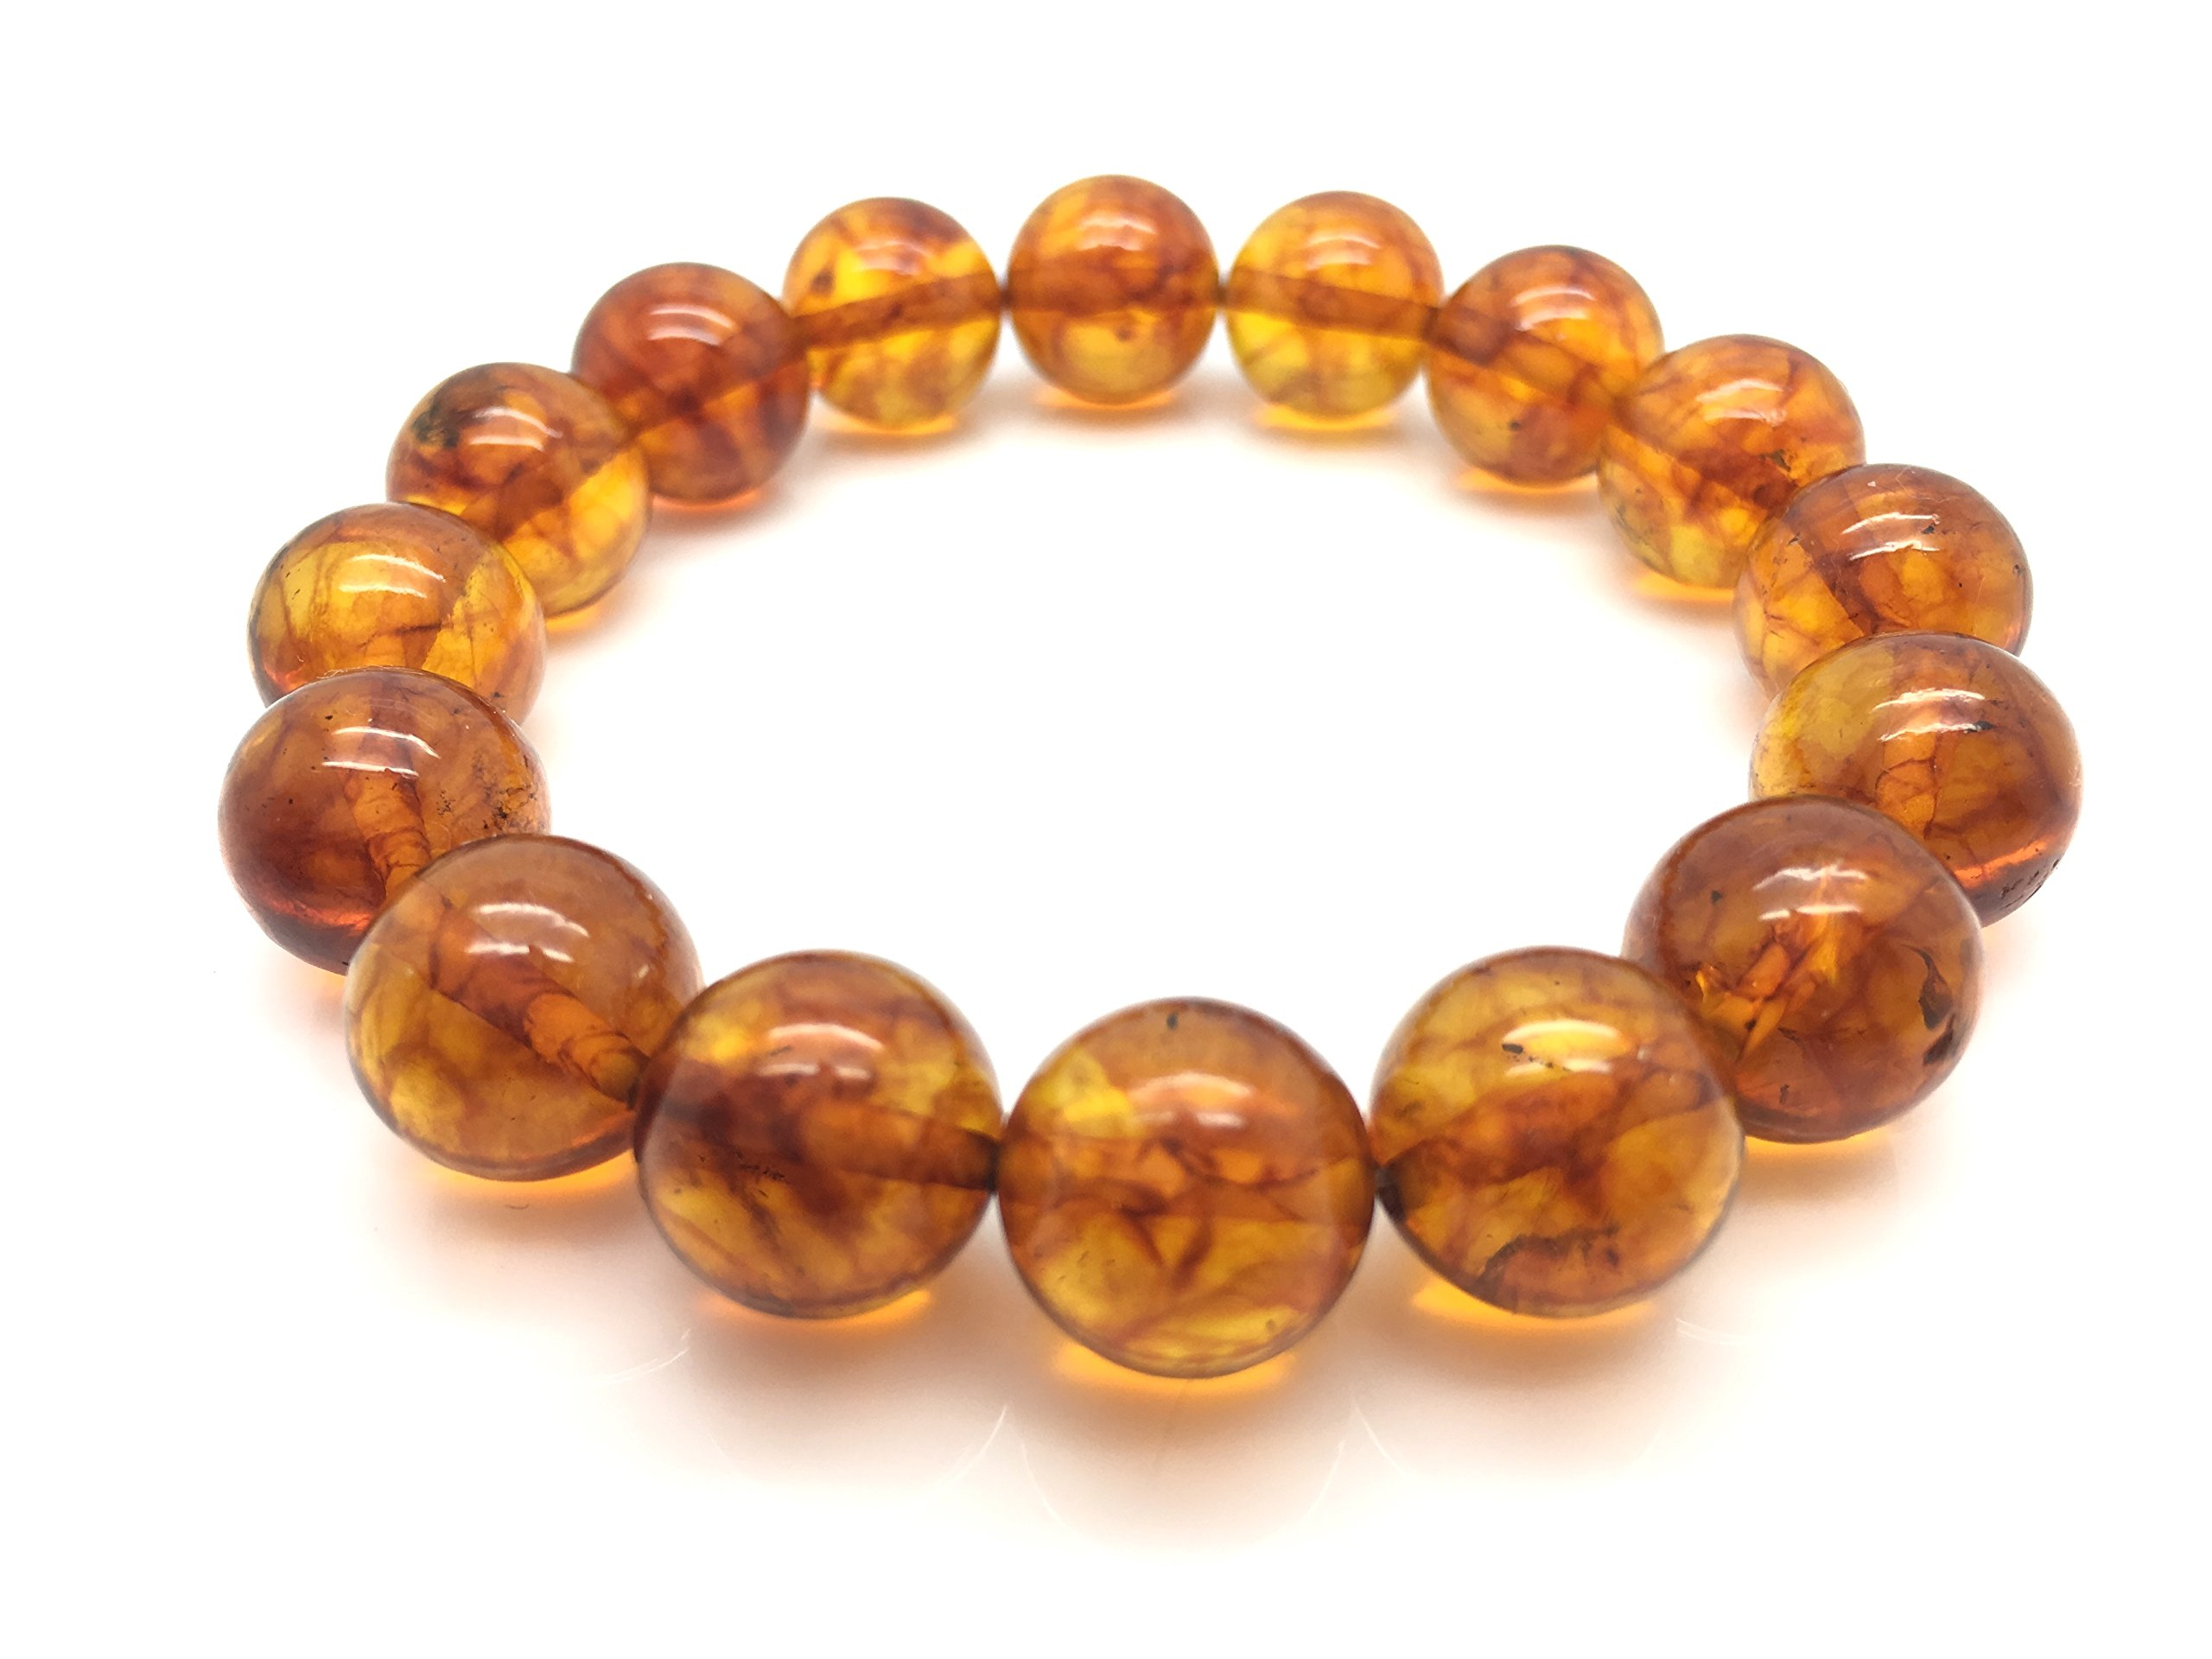 Natural Baltic Amber Bracelet Light Cognac Colour ±16g 12± mm size.